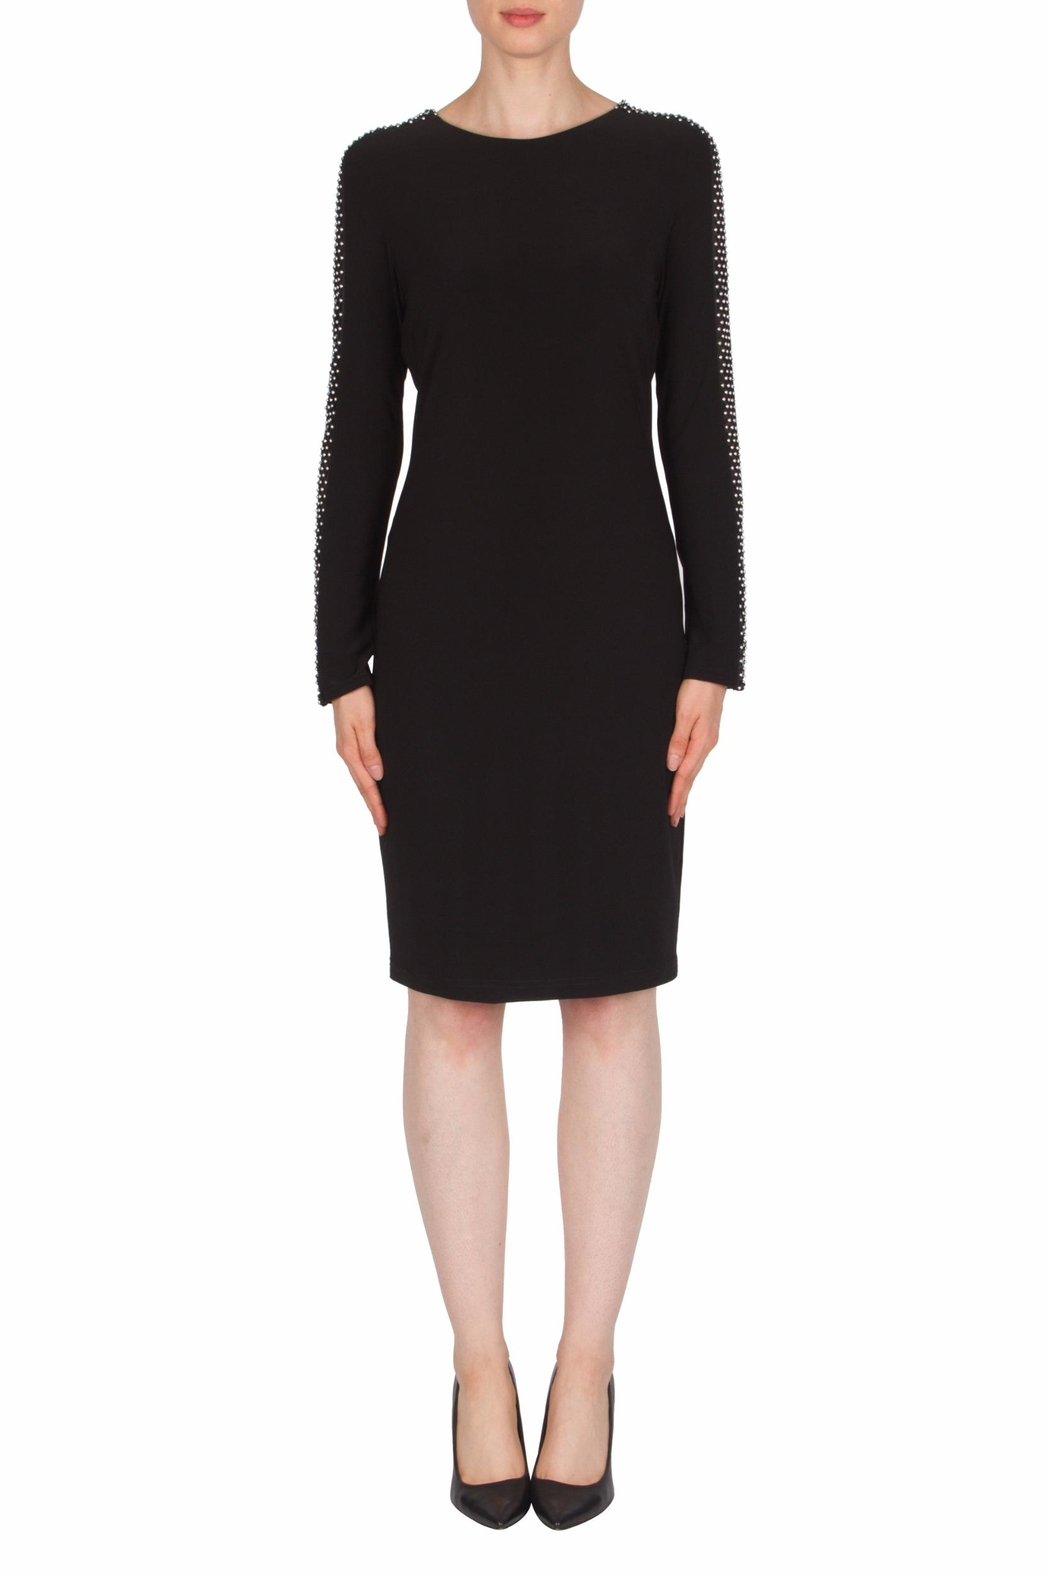 Joseph Ribkoff Mesh Sleeve Detail Dress - Main Image